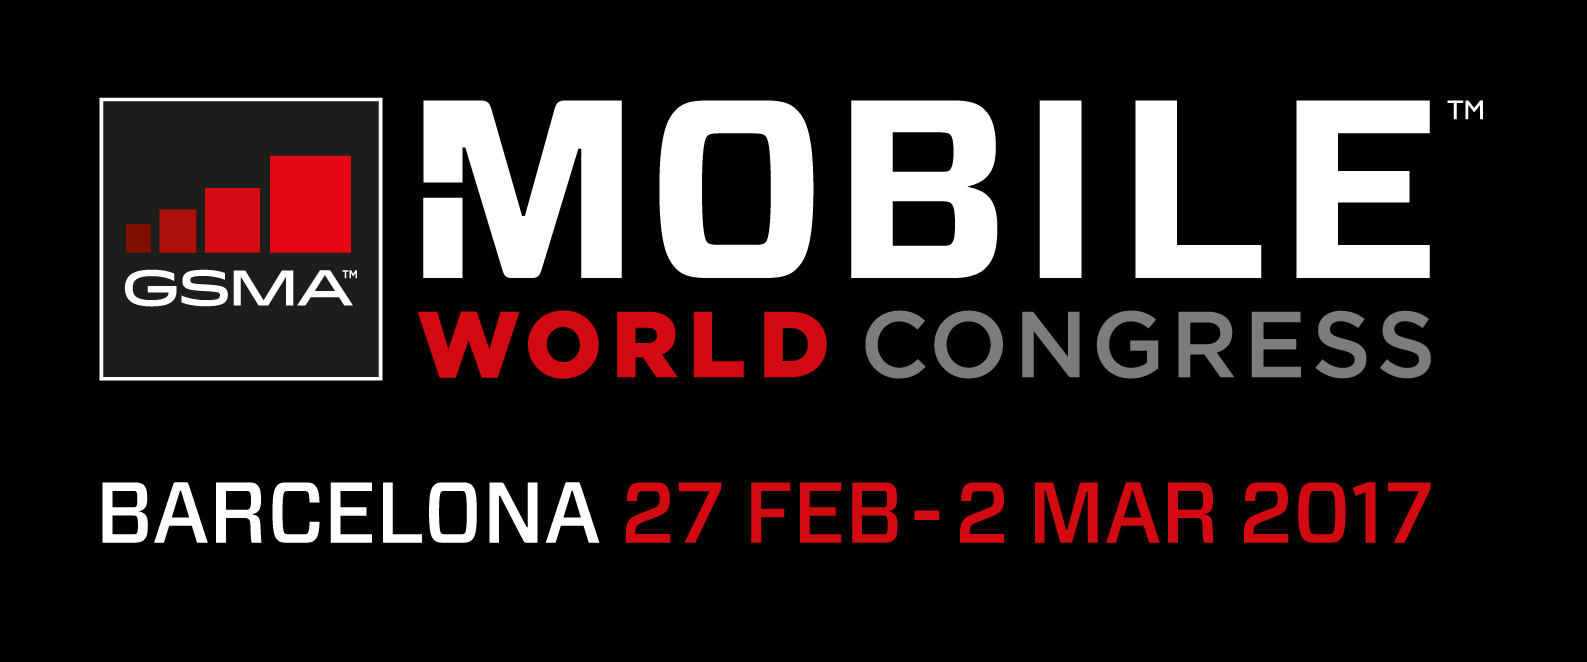 mobile-global-event-the-technews